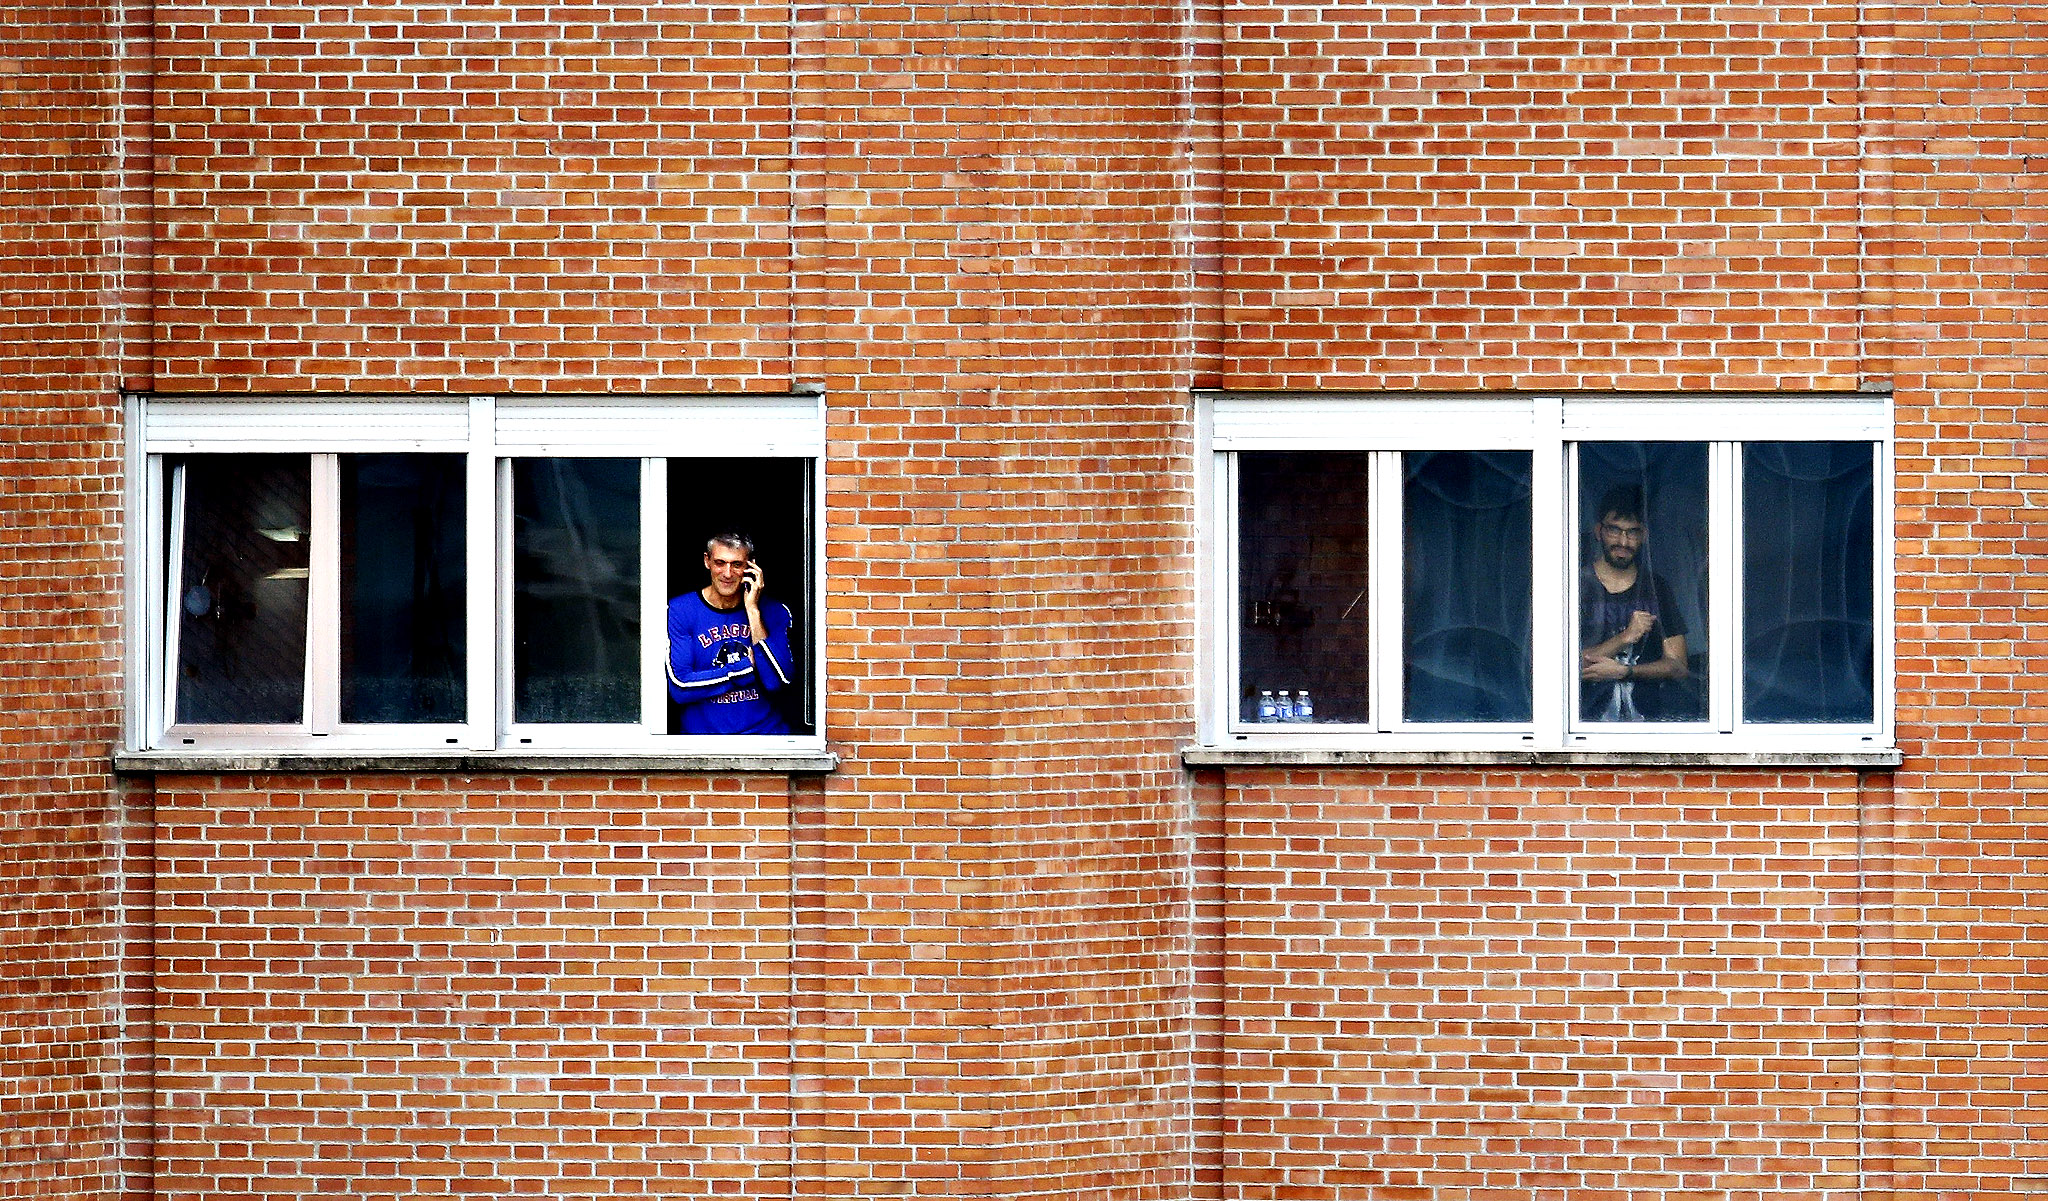 Parra, a doctor who treated Spanish nurse Romero Ramos who contracted Ebola, looks out of a window from his isolation ward at the Carlos III hospital in Madrid...Juan Manuel Parra (L), a doctor who treated Spanish nurse Teresa Romero Ramos who contracted Ebola, looks out of the window of the isolation ward as another unidentified person occupying an adjacent room looks on, at Madrid's Carlos III hospital, October 10, 2014. Seven people turned themselves in late on Thursday to an Ebola isolation unit in Madrid where Teresa Romero, the nurse who became the first person to contract Ebola outside Africa, lay gravely ill.